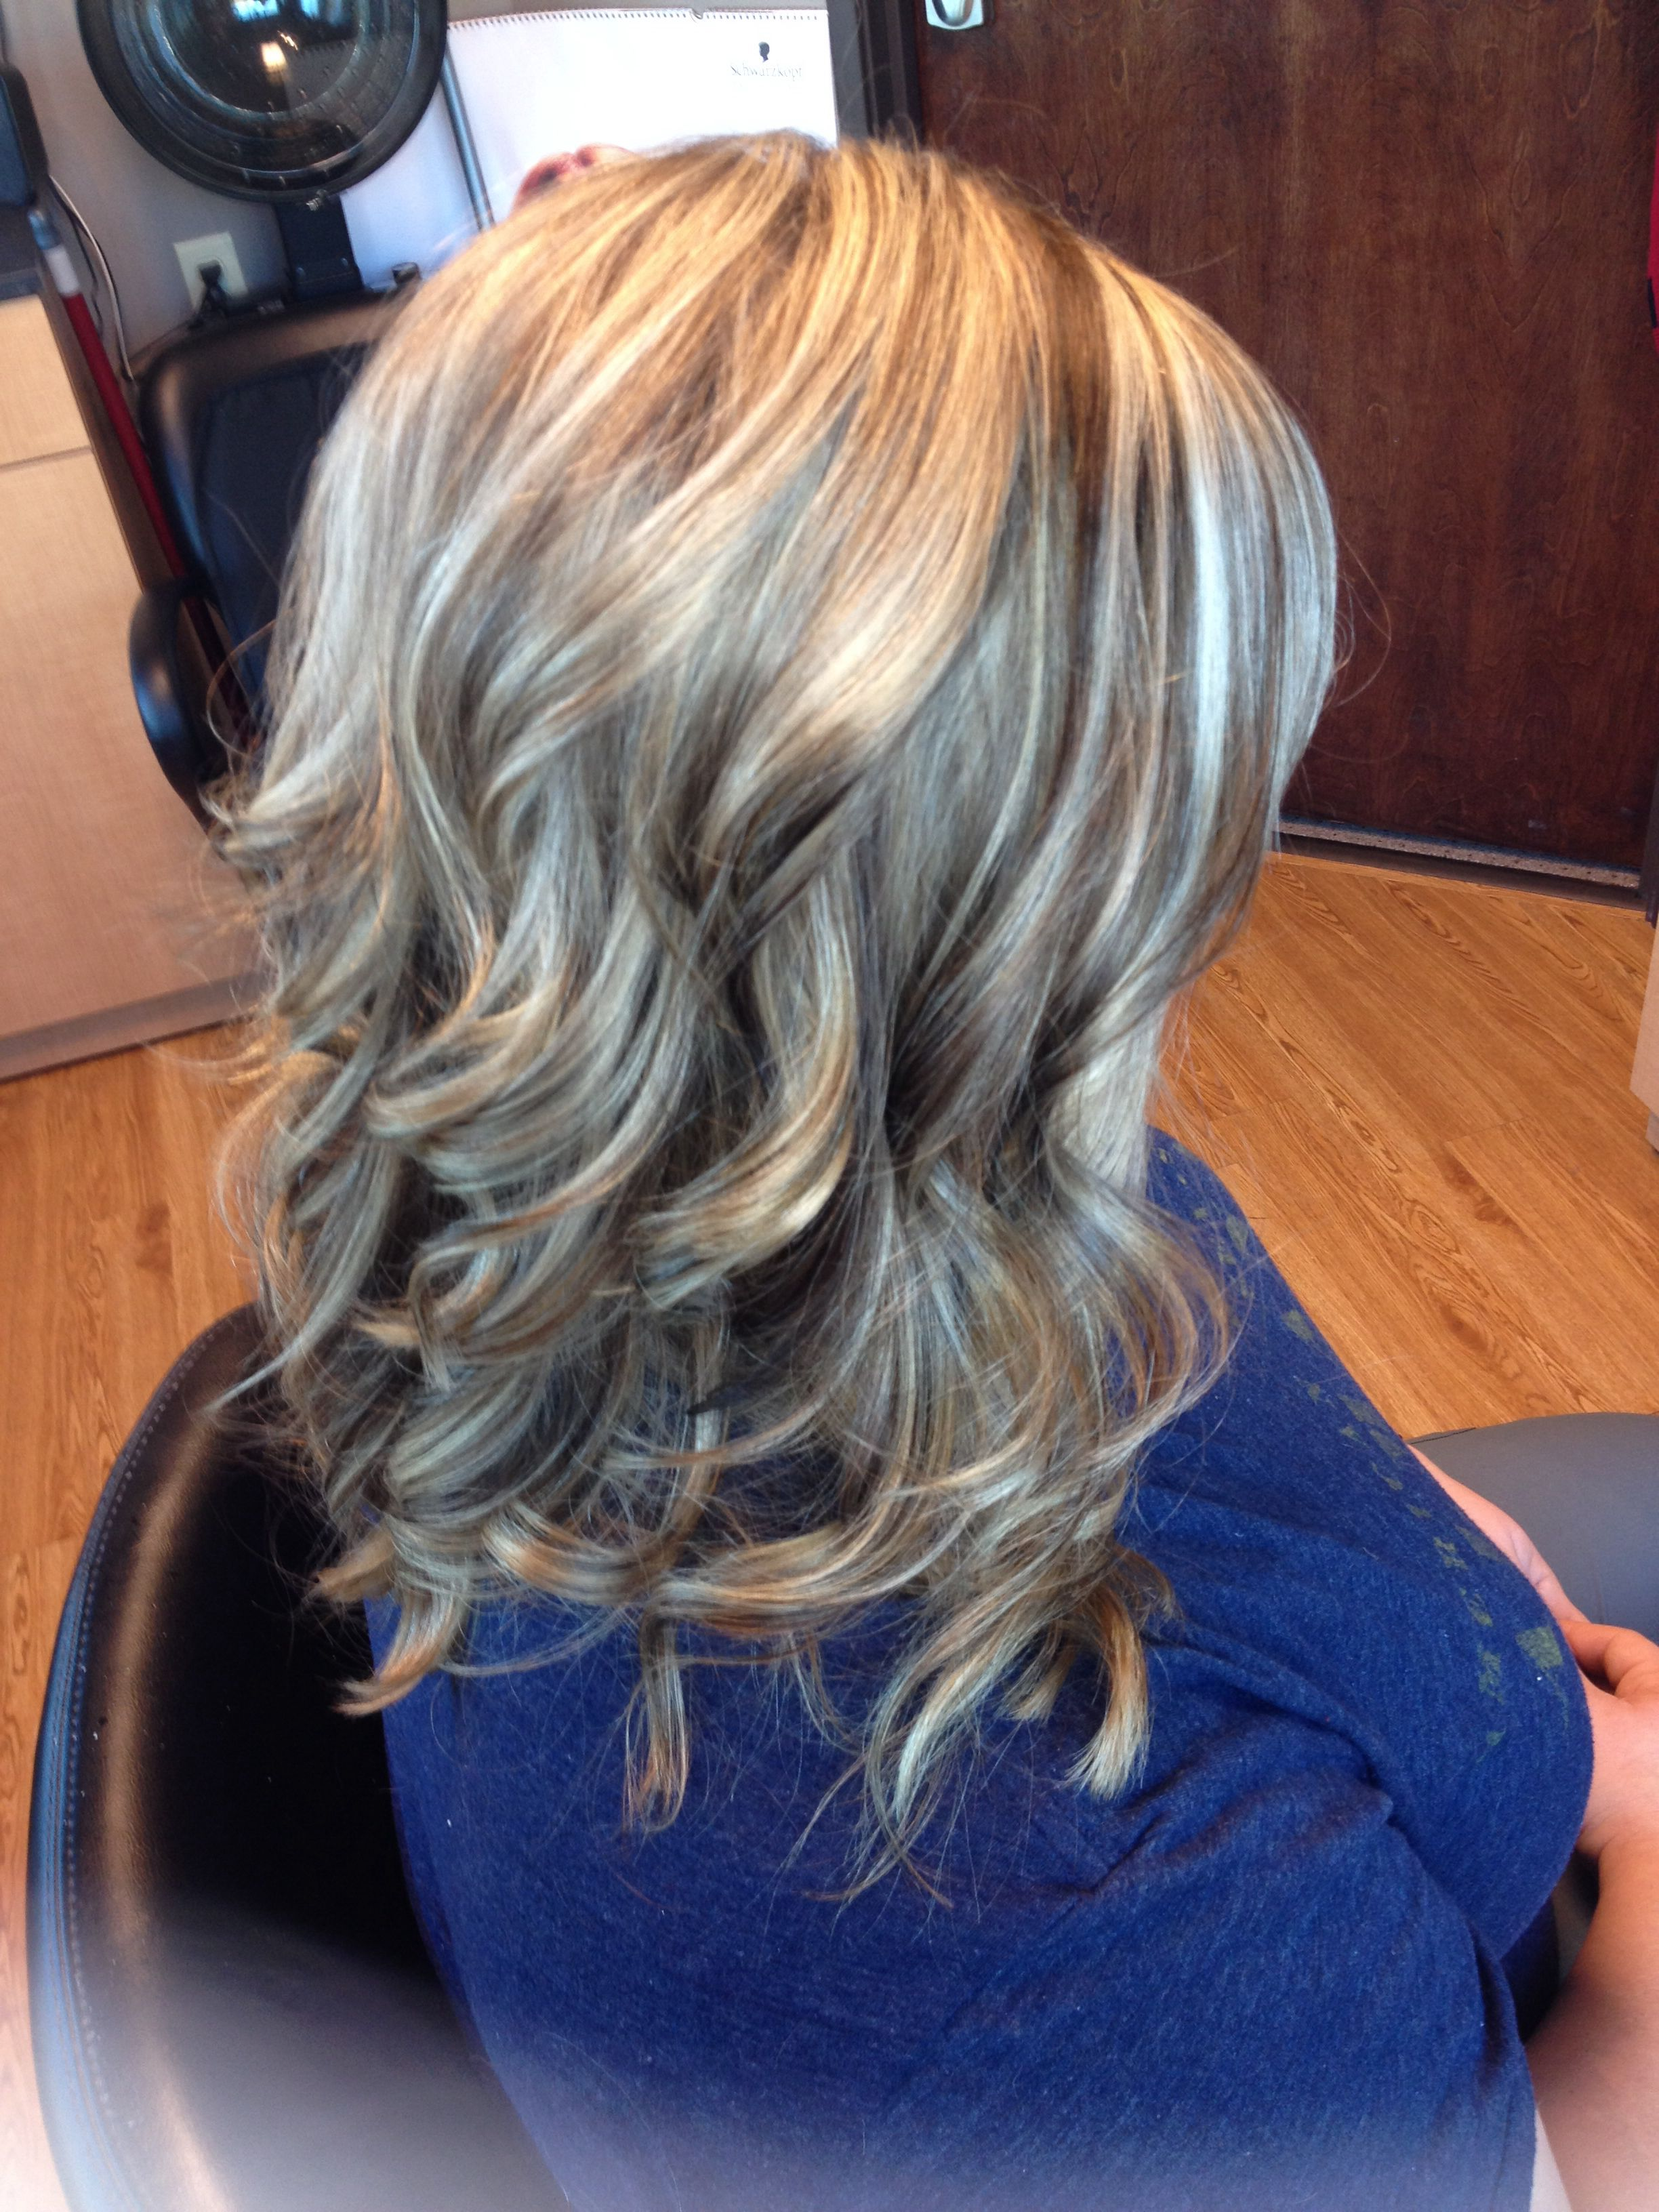 20++ Hairstyles with highlights and lowlights pictures ideas